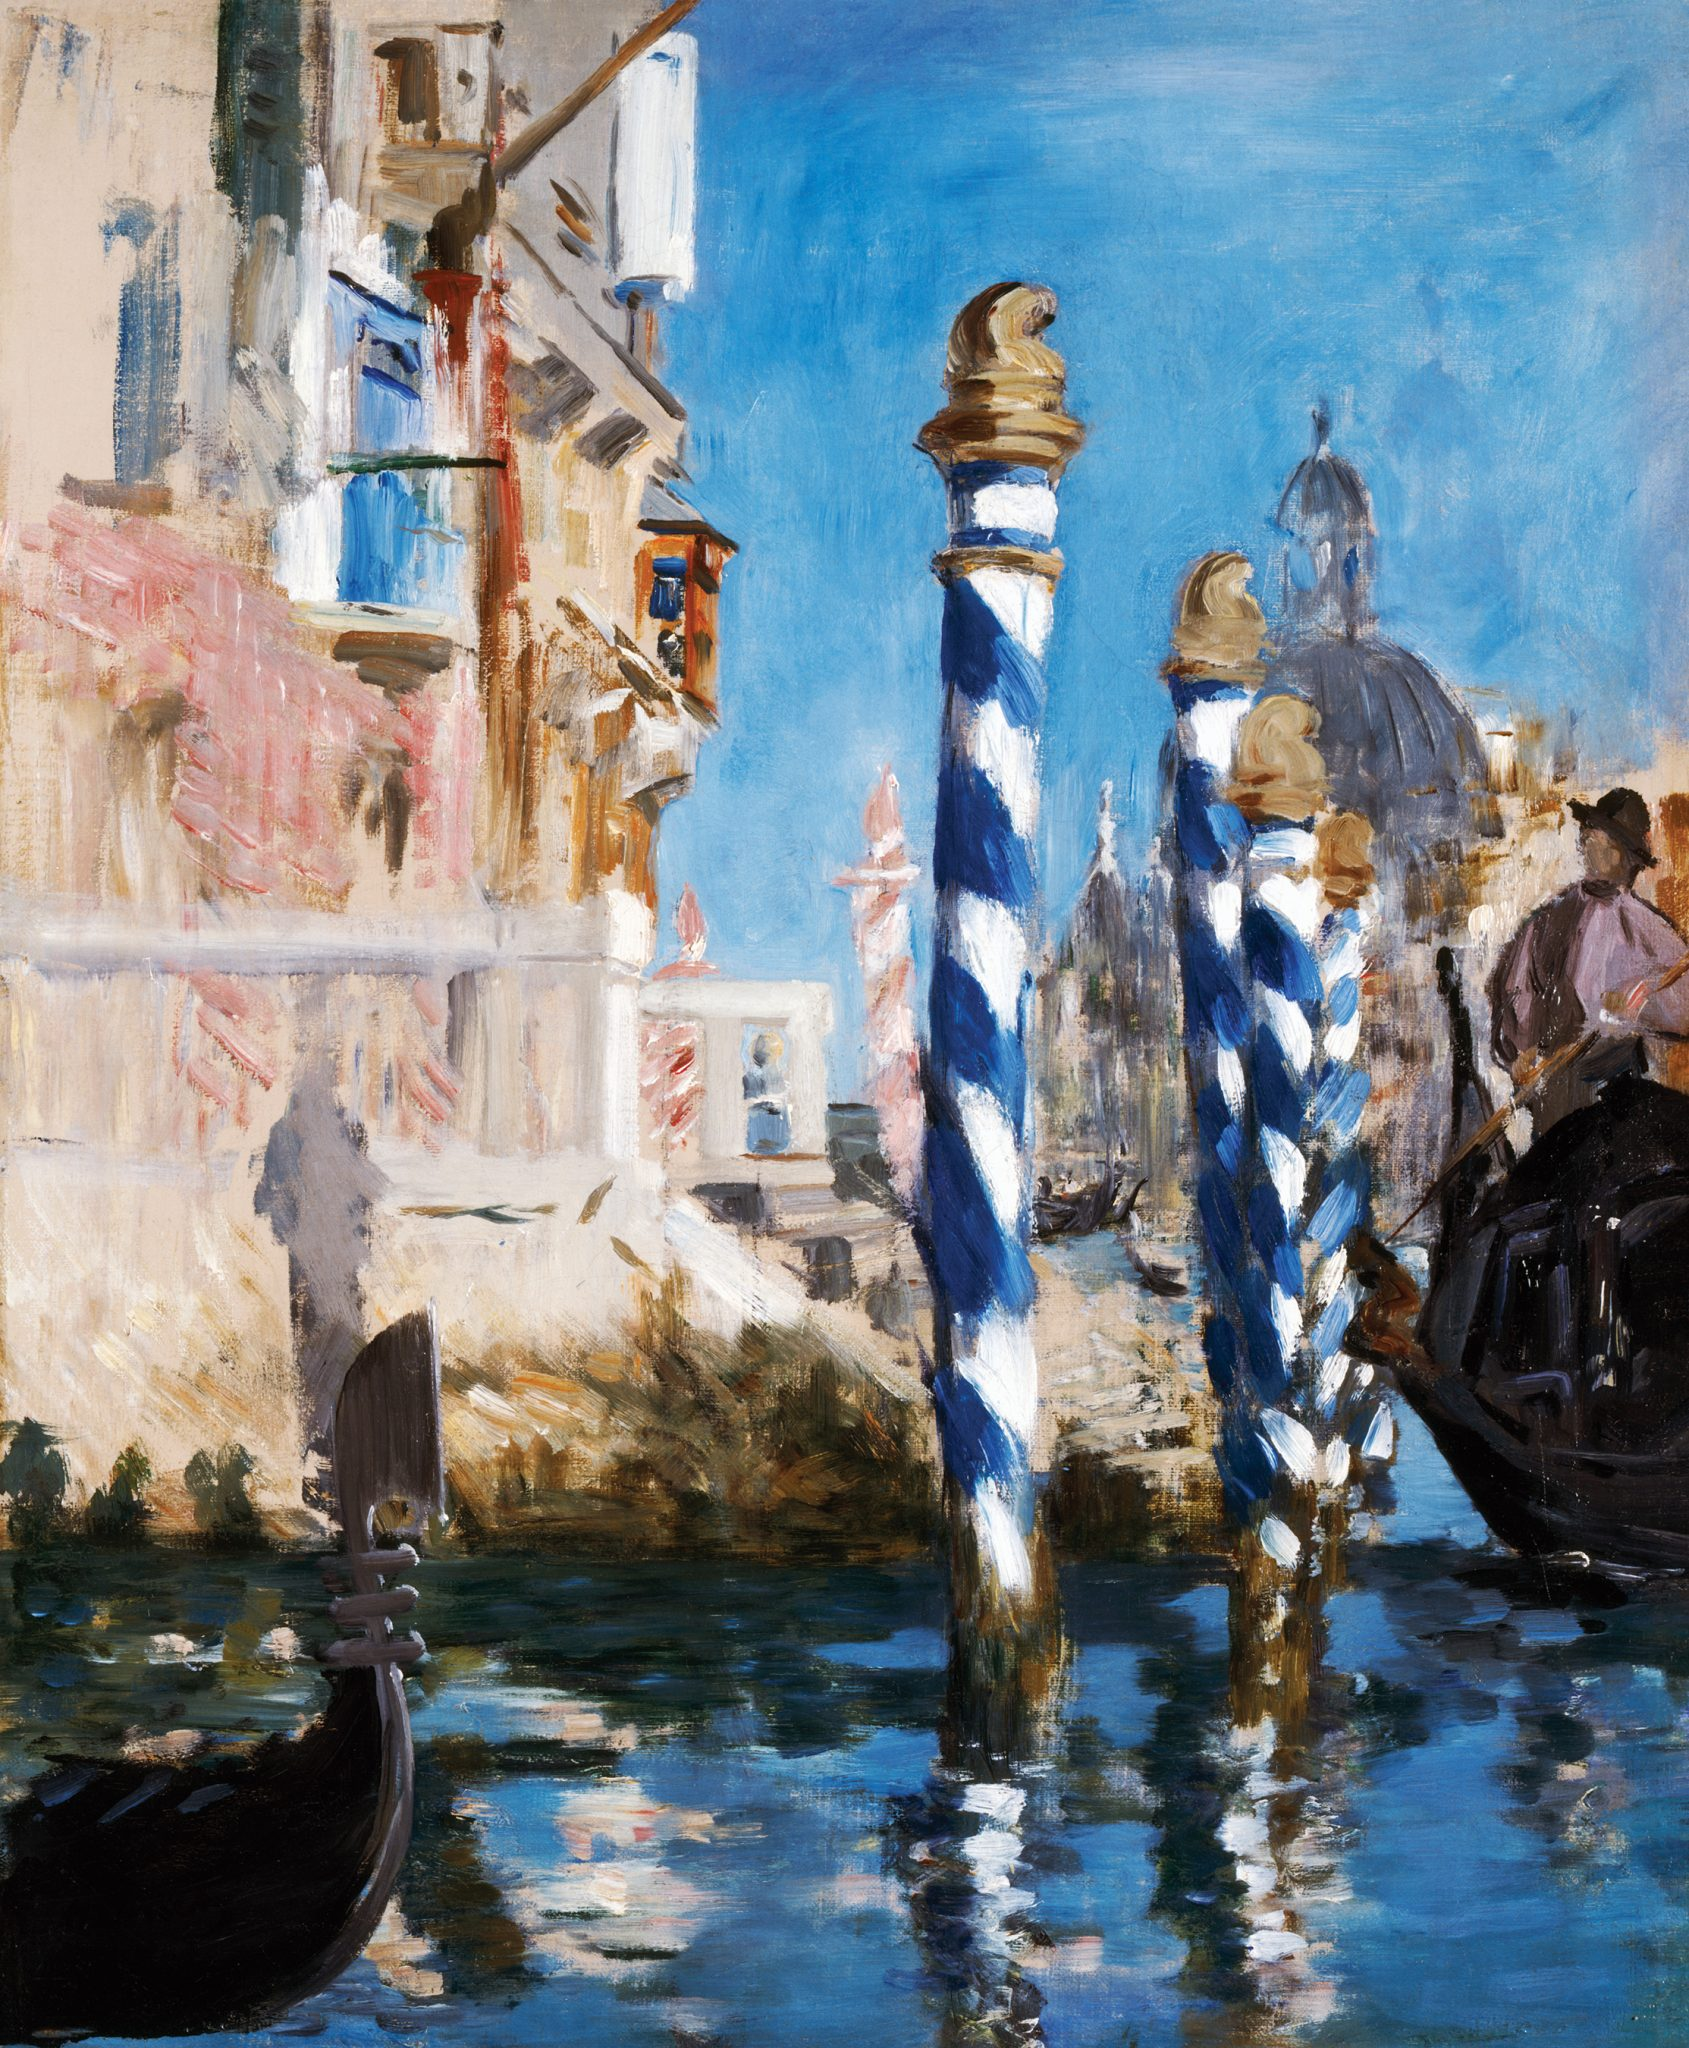 View in Venice-The Grand Canal, 1874, Edouard Manet, French, 1832-1883, Paul G. Allen Family Collection.